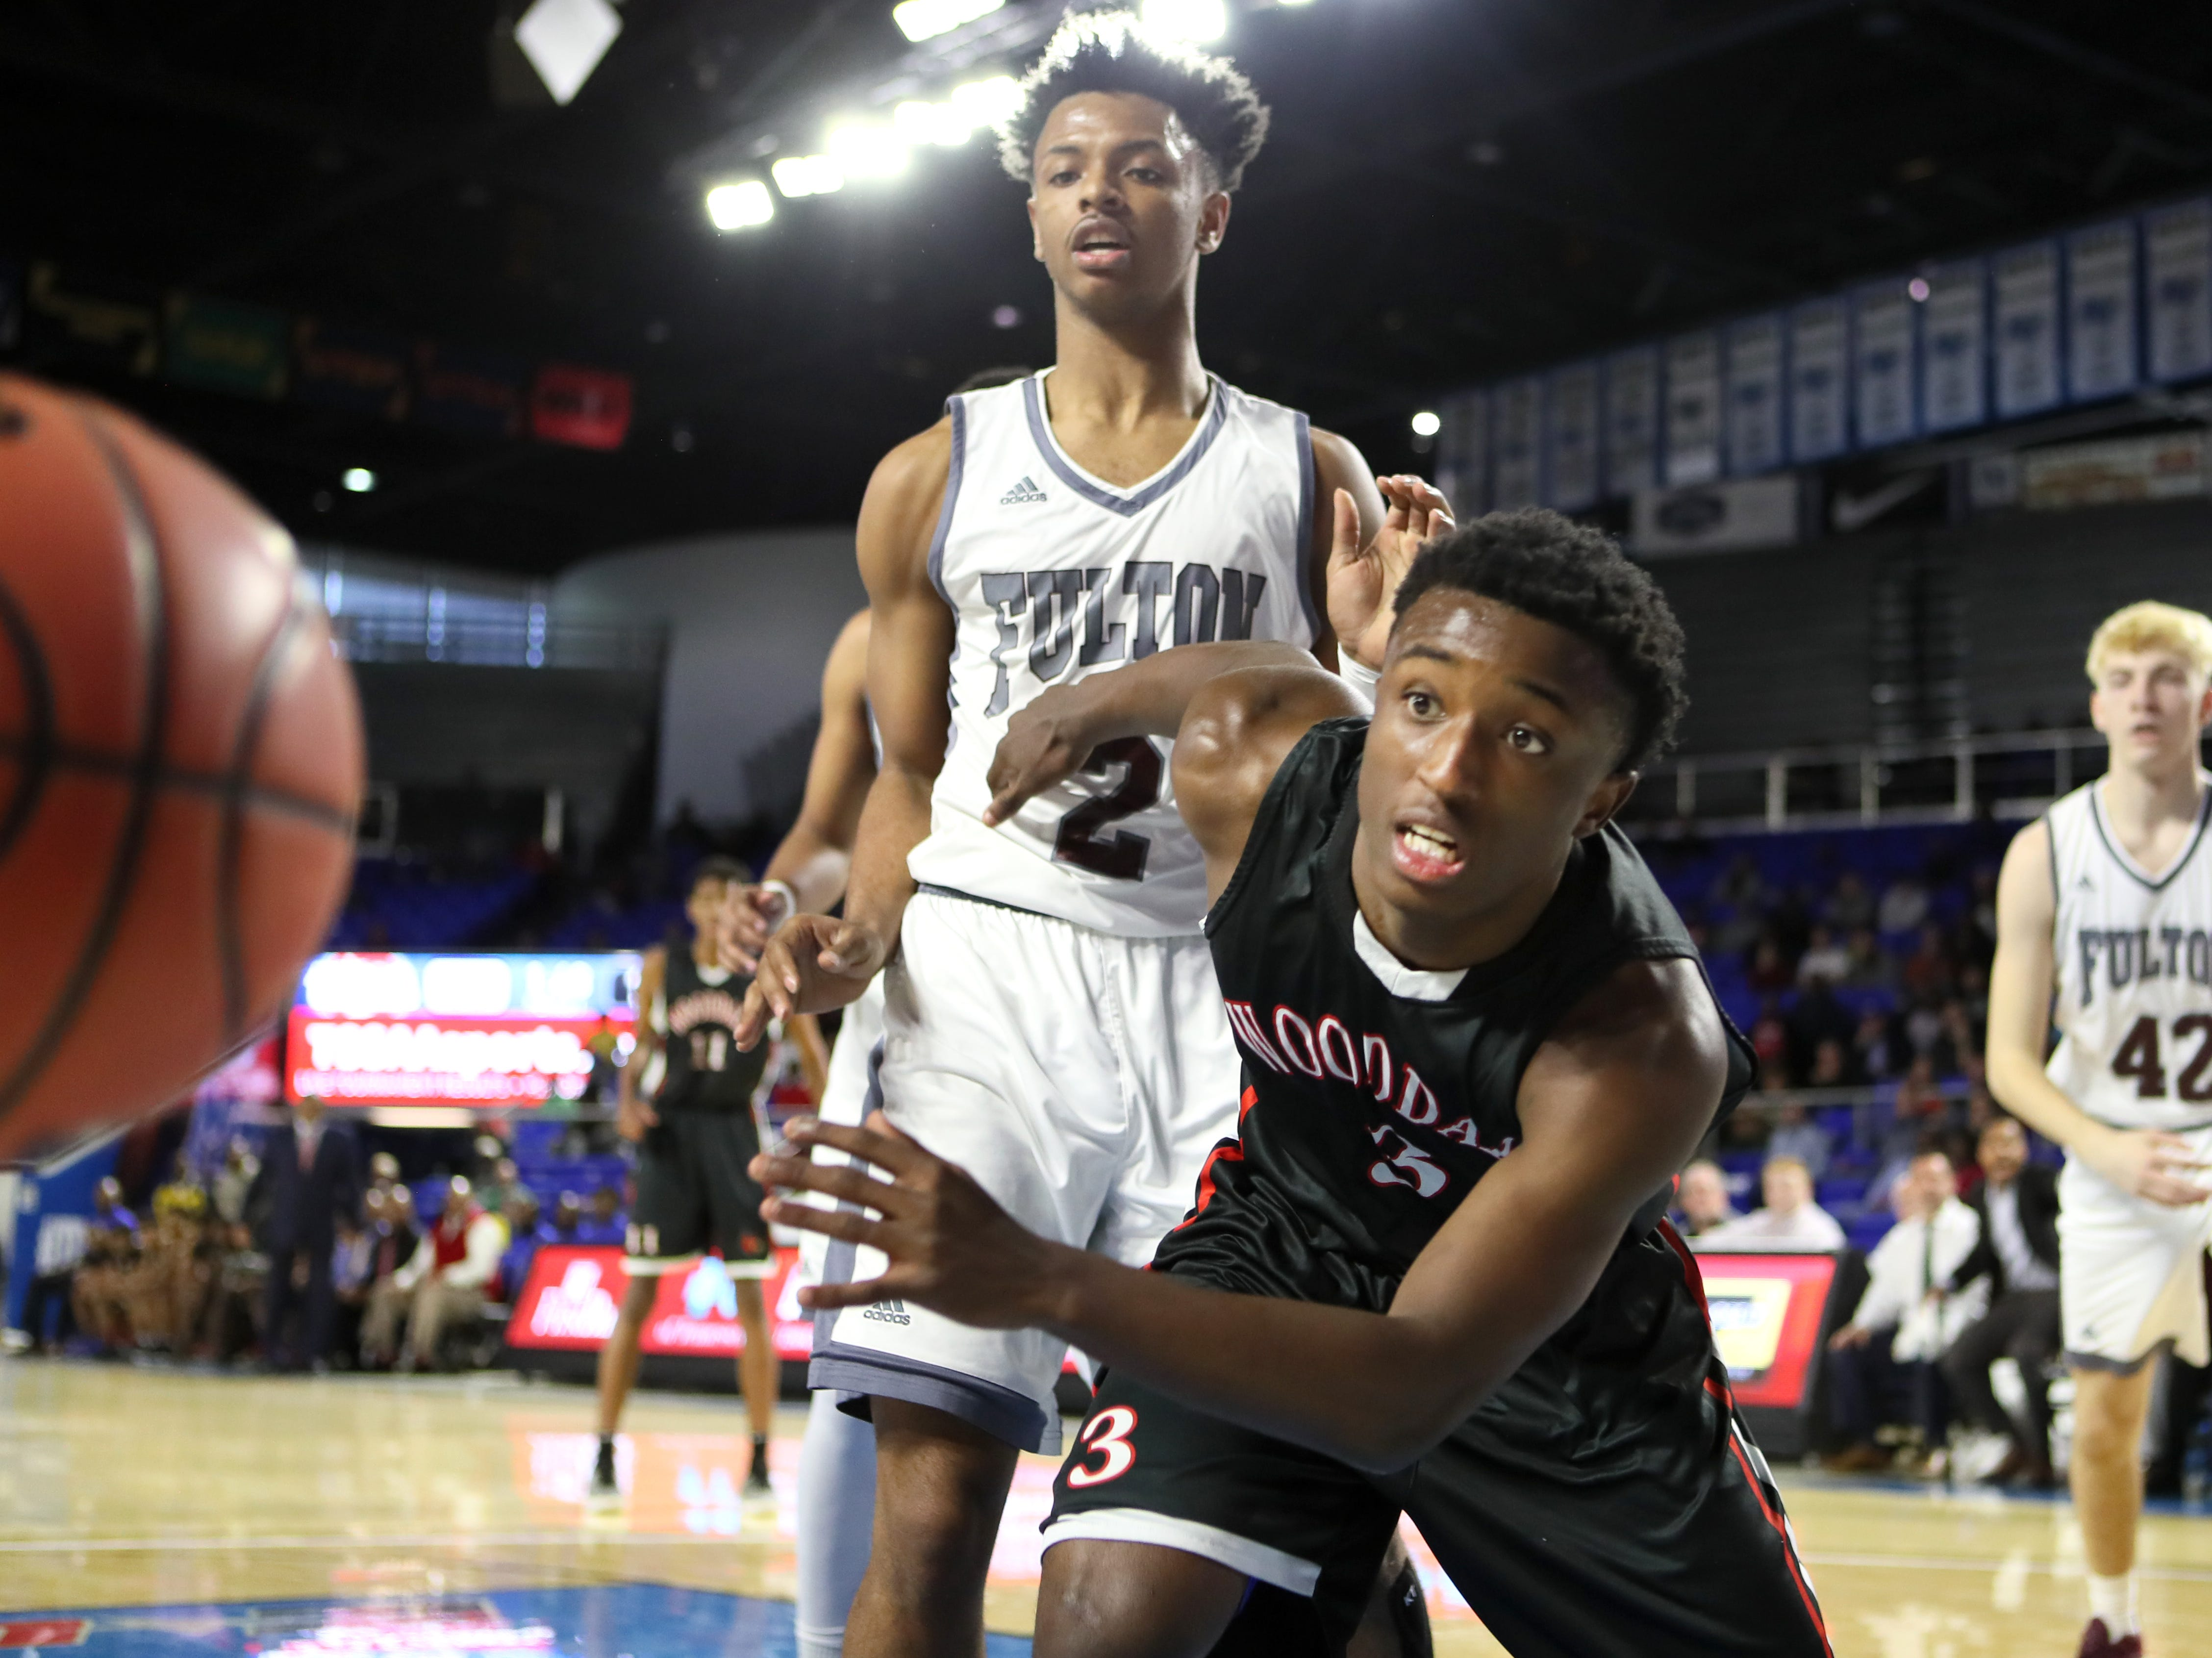 Wooddale's Alvin Miles watches as a ball slips out of bounds against Fulton during the Class AA boys basketball state championship game at the Murphy Center in Murfreesboro, Tenn. on Saturday, March 16, 2019.